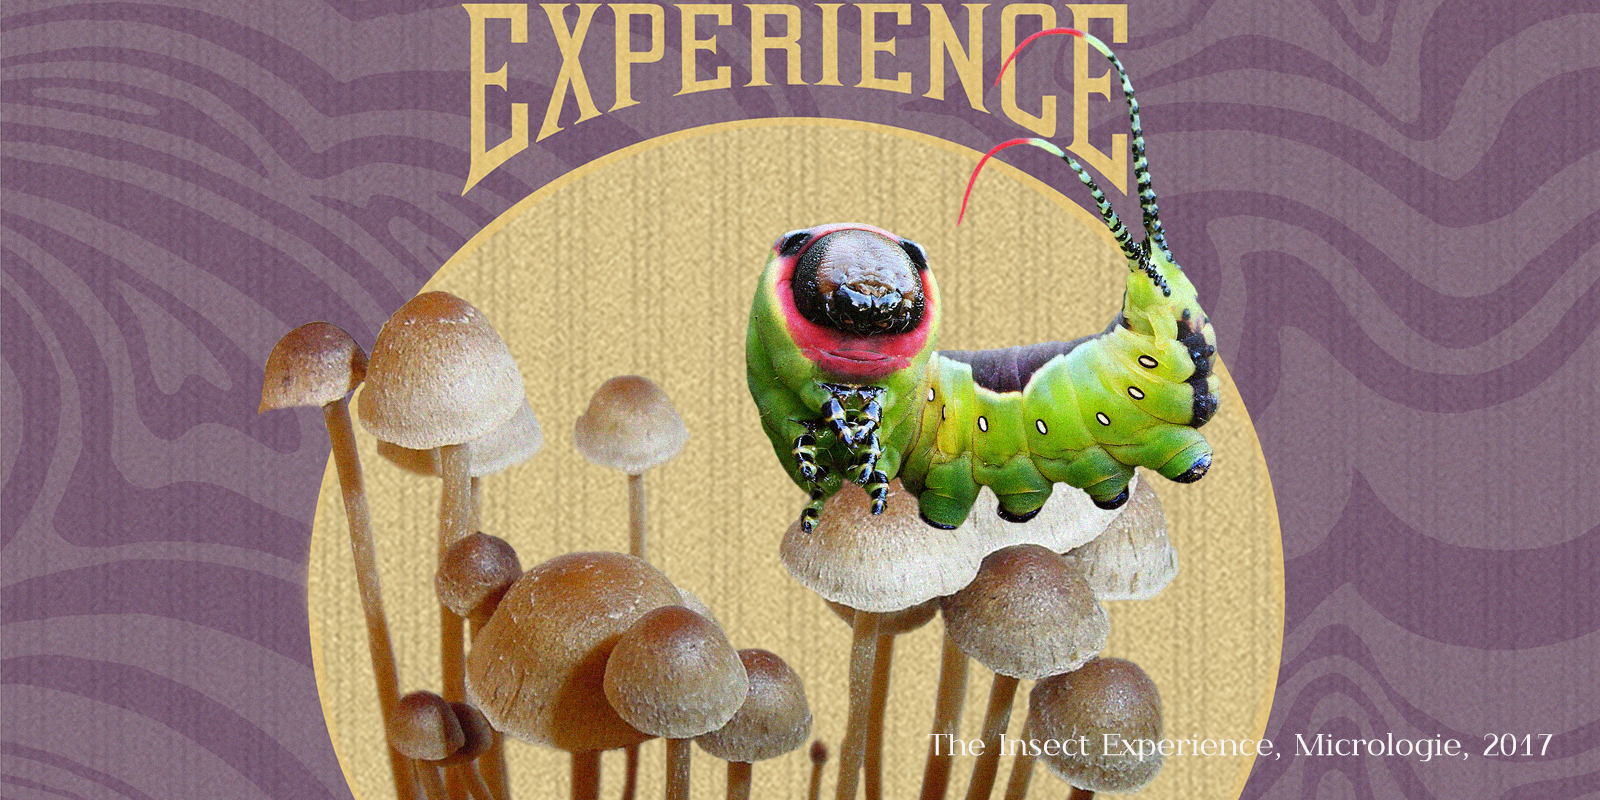 The insect experience, micrologie 2017